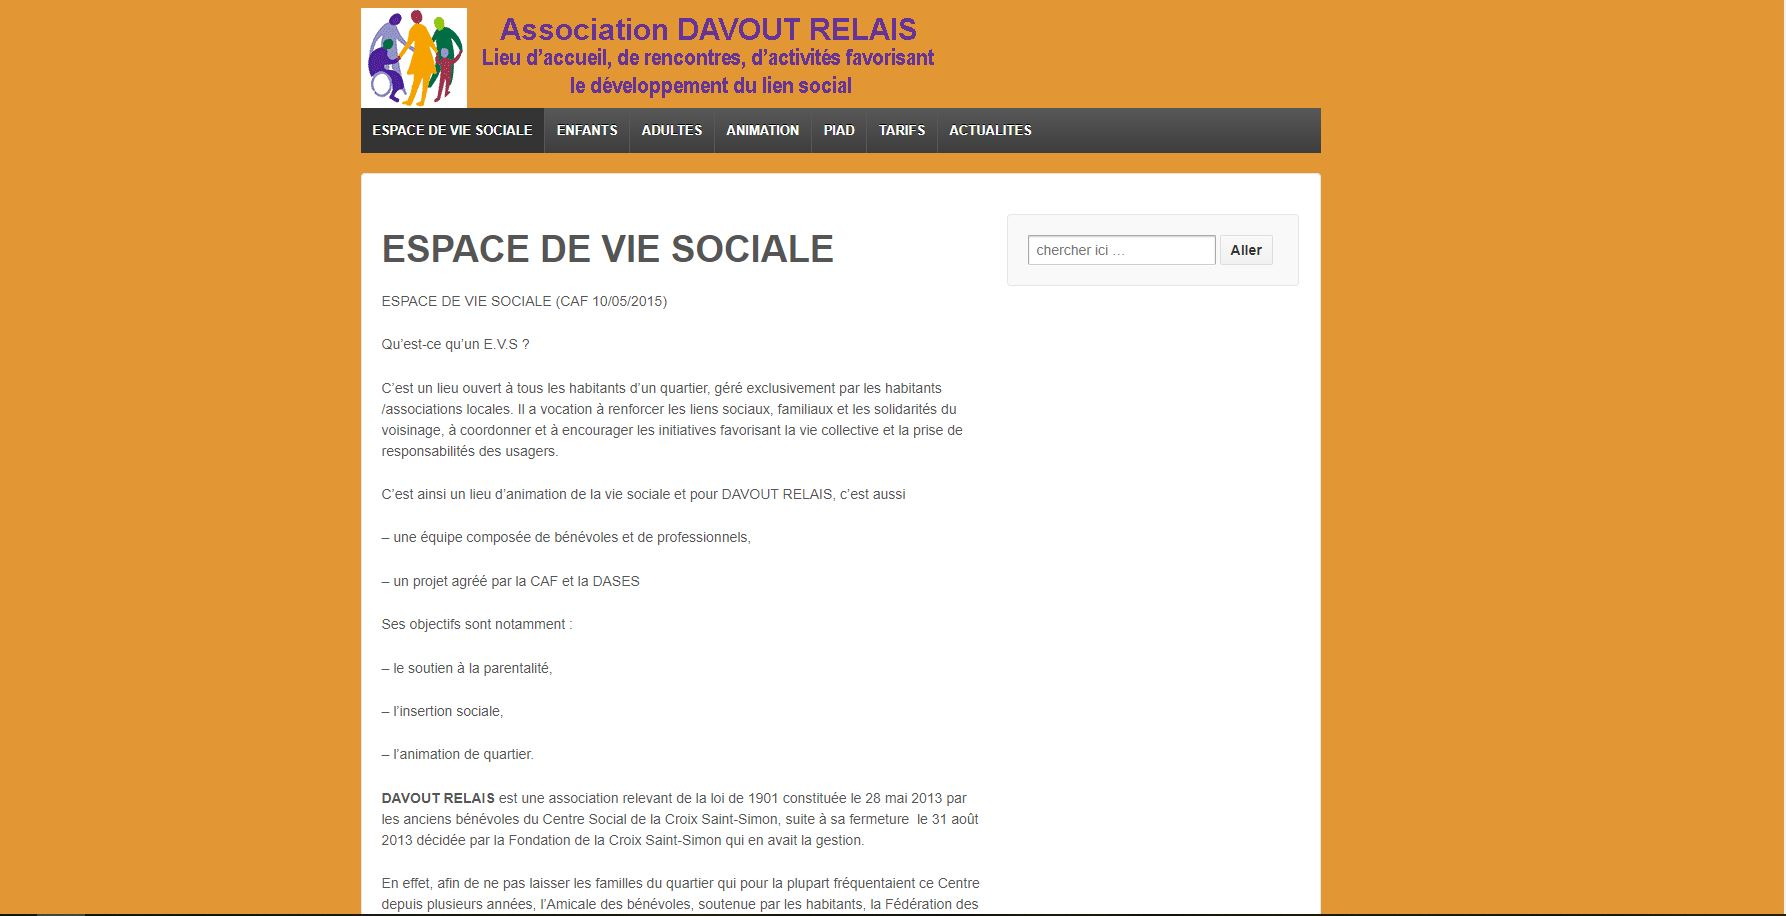 Association Davout Relais